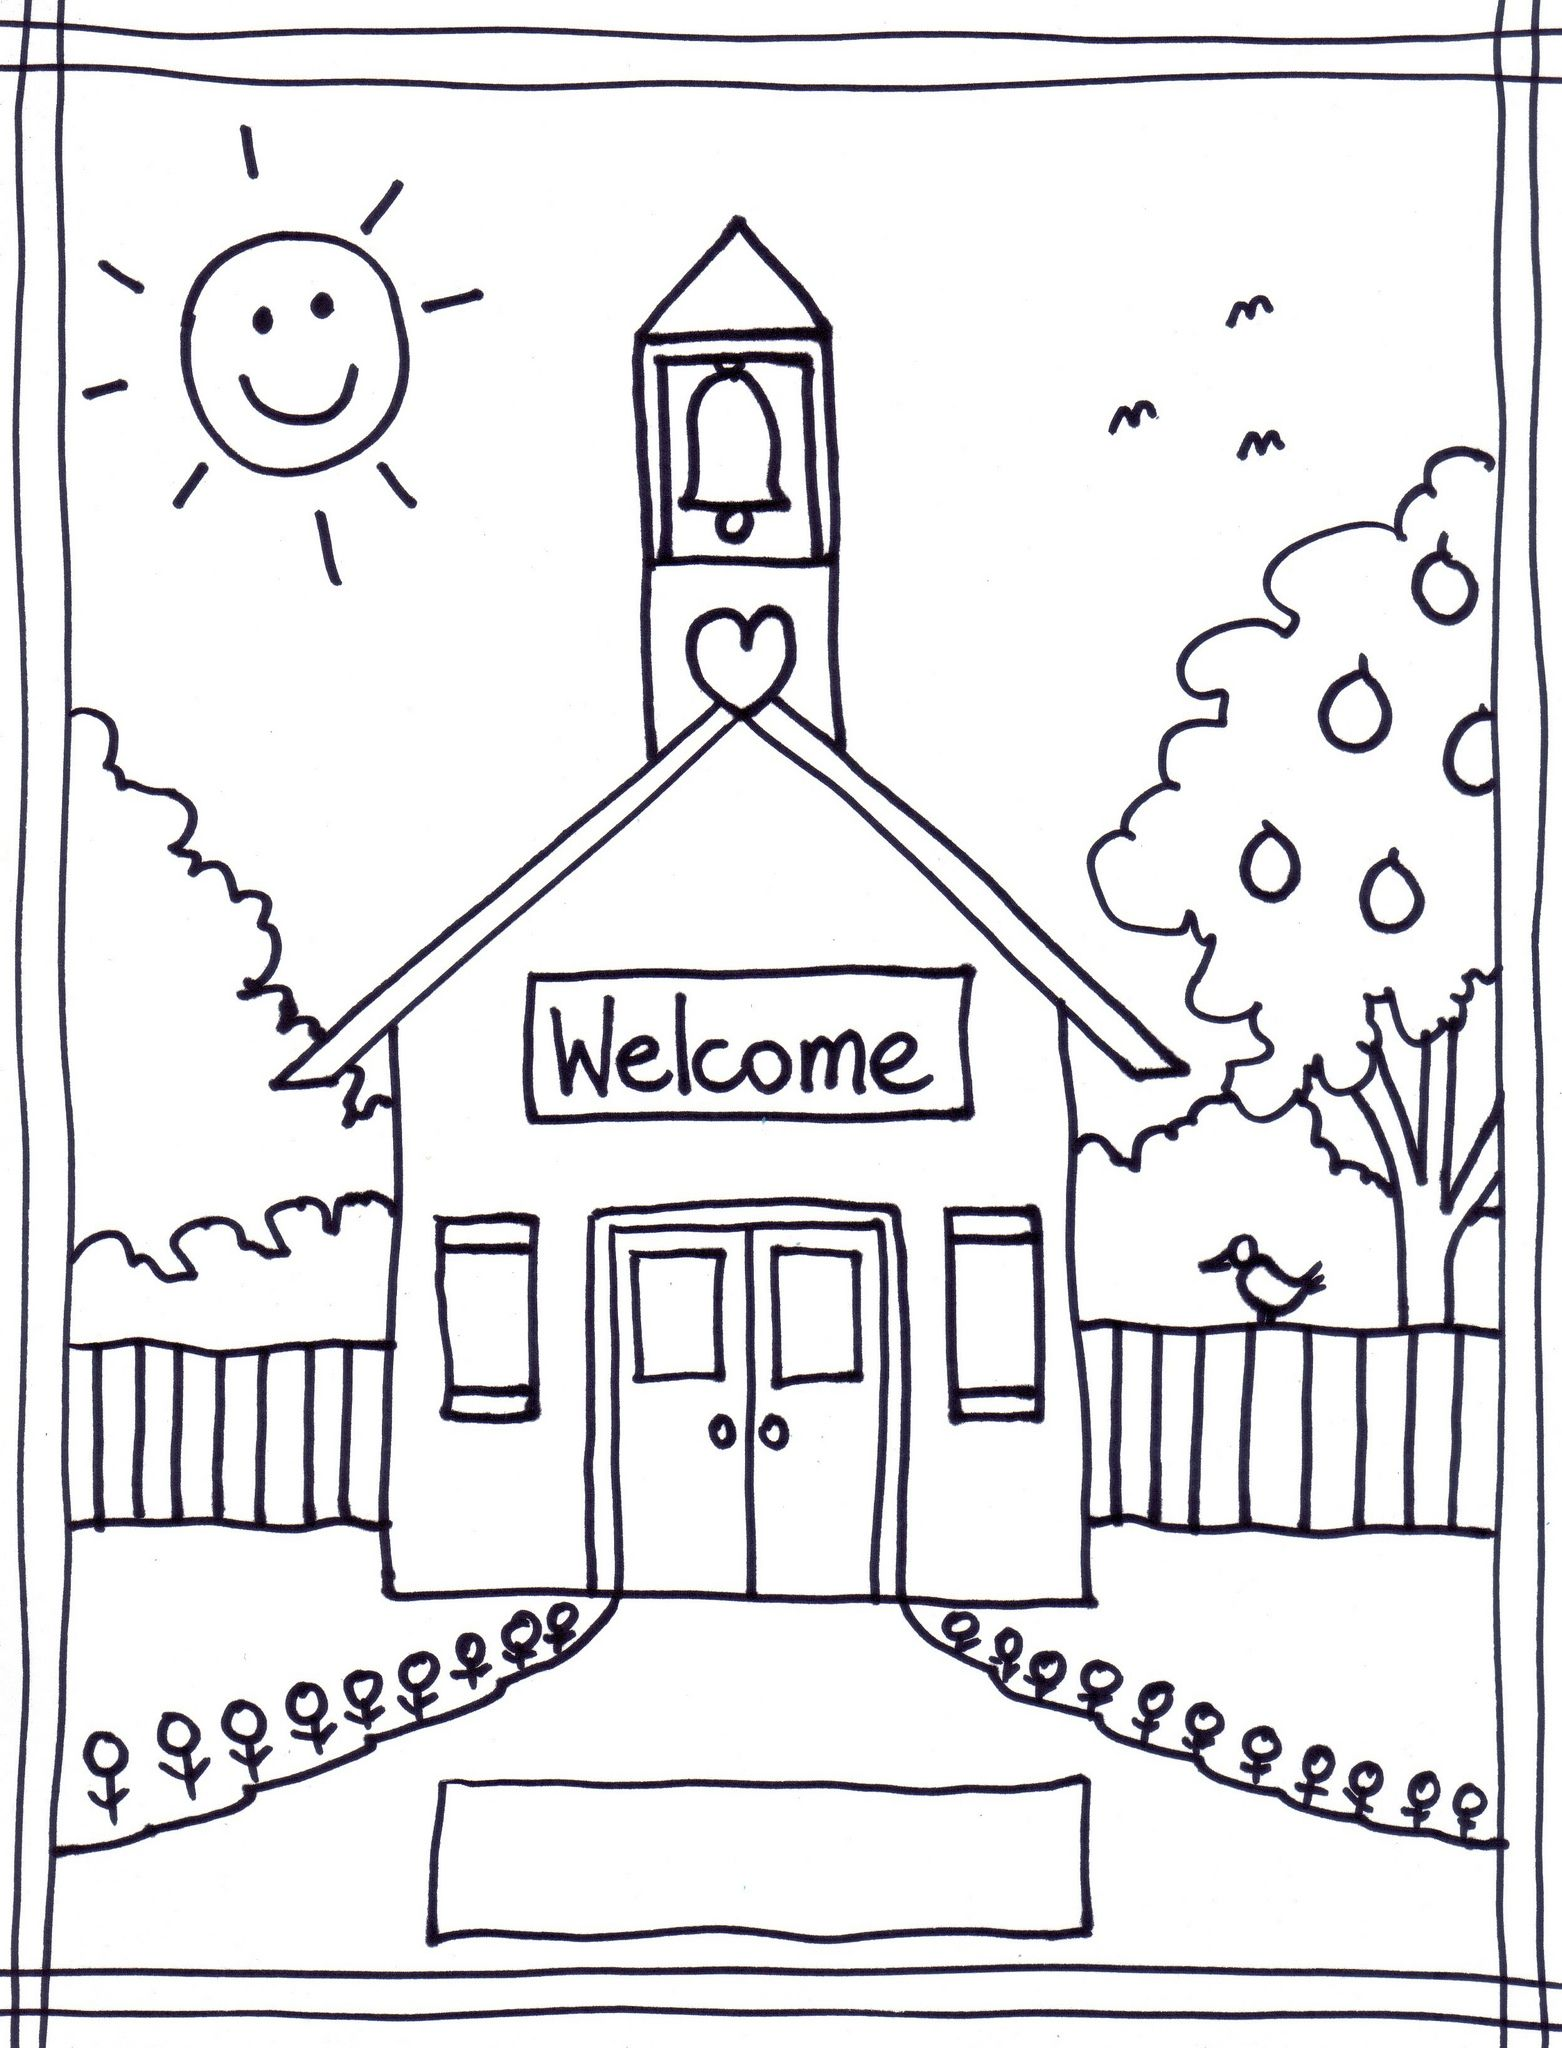 back to school coloring pages free printables Back To School Coloring Pages Free Printables Image 22  back to school coloring pages free printables